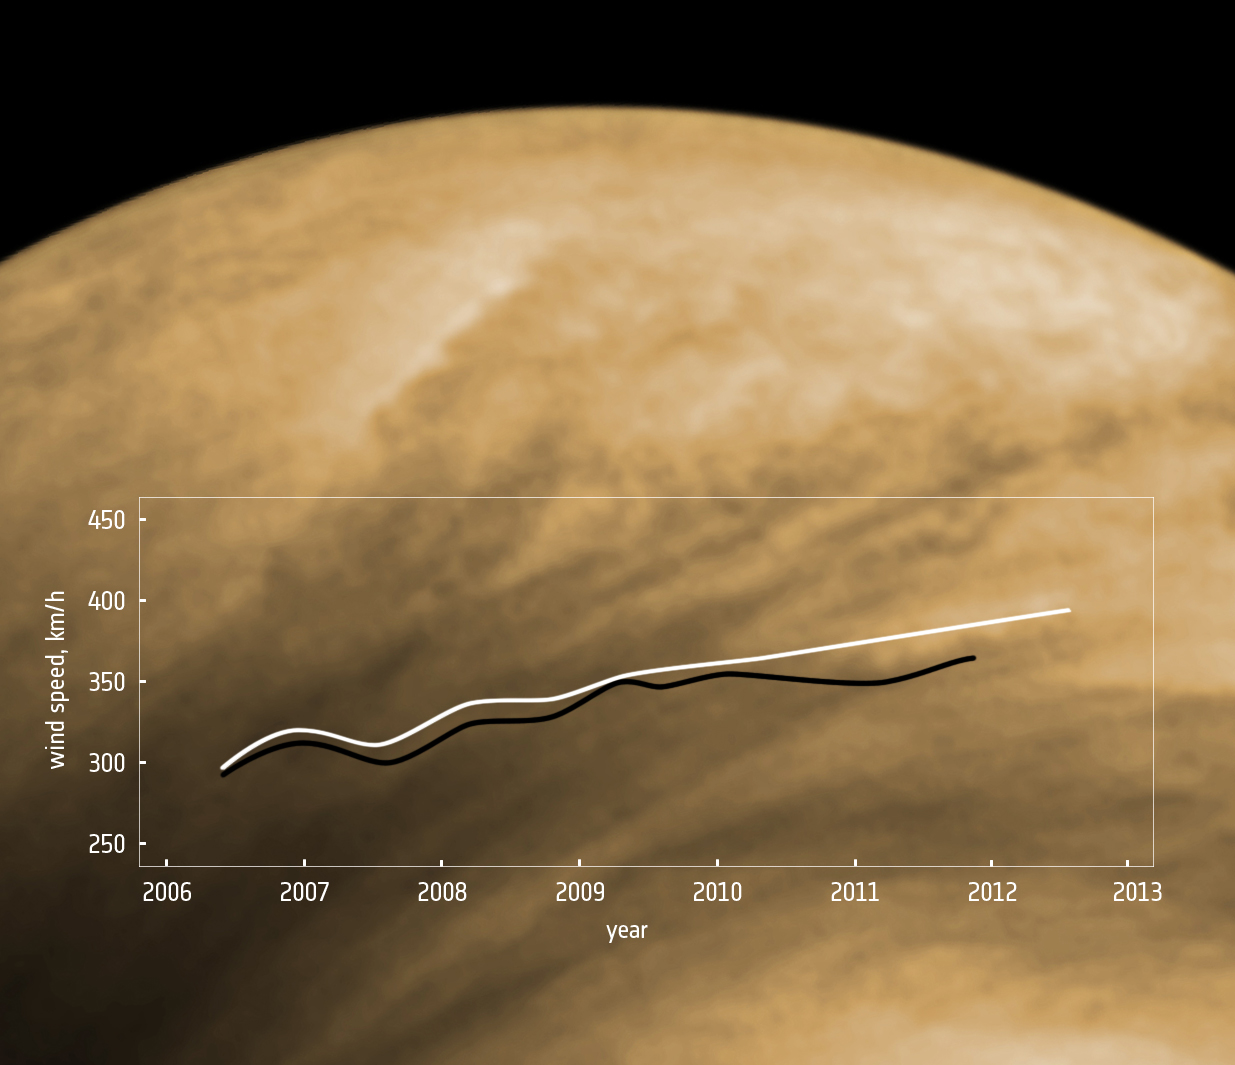 What Is The Weather Like On Venus 2 Way Switch Twin And Earth Over Past Six Years Wind Speeds In Atmosphere Have Been Steadily Rising Credit Esa